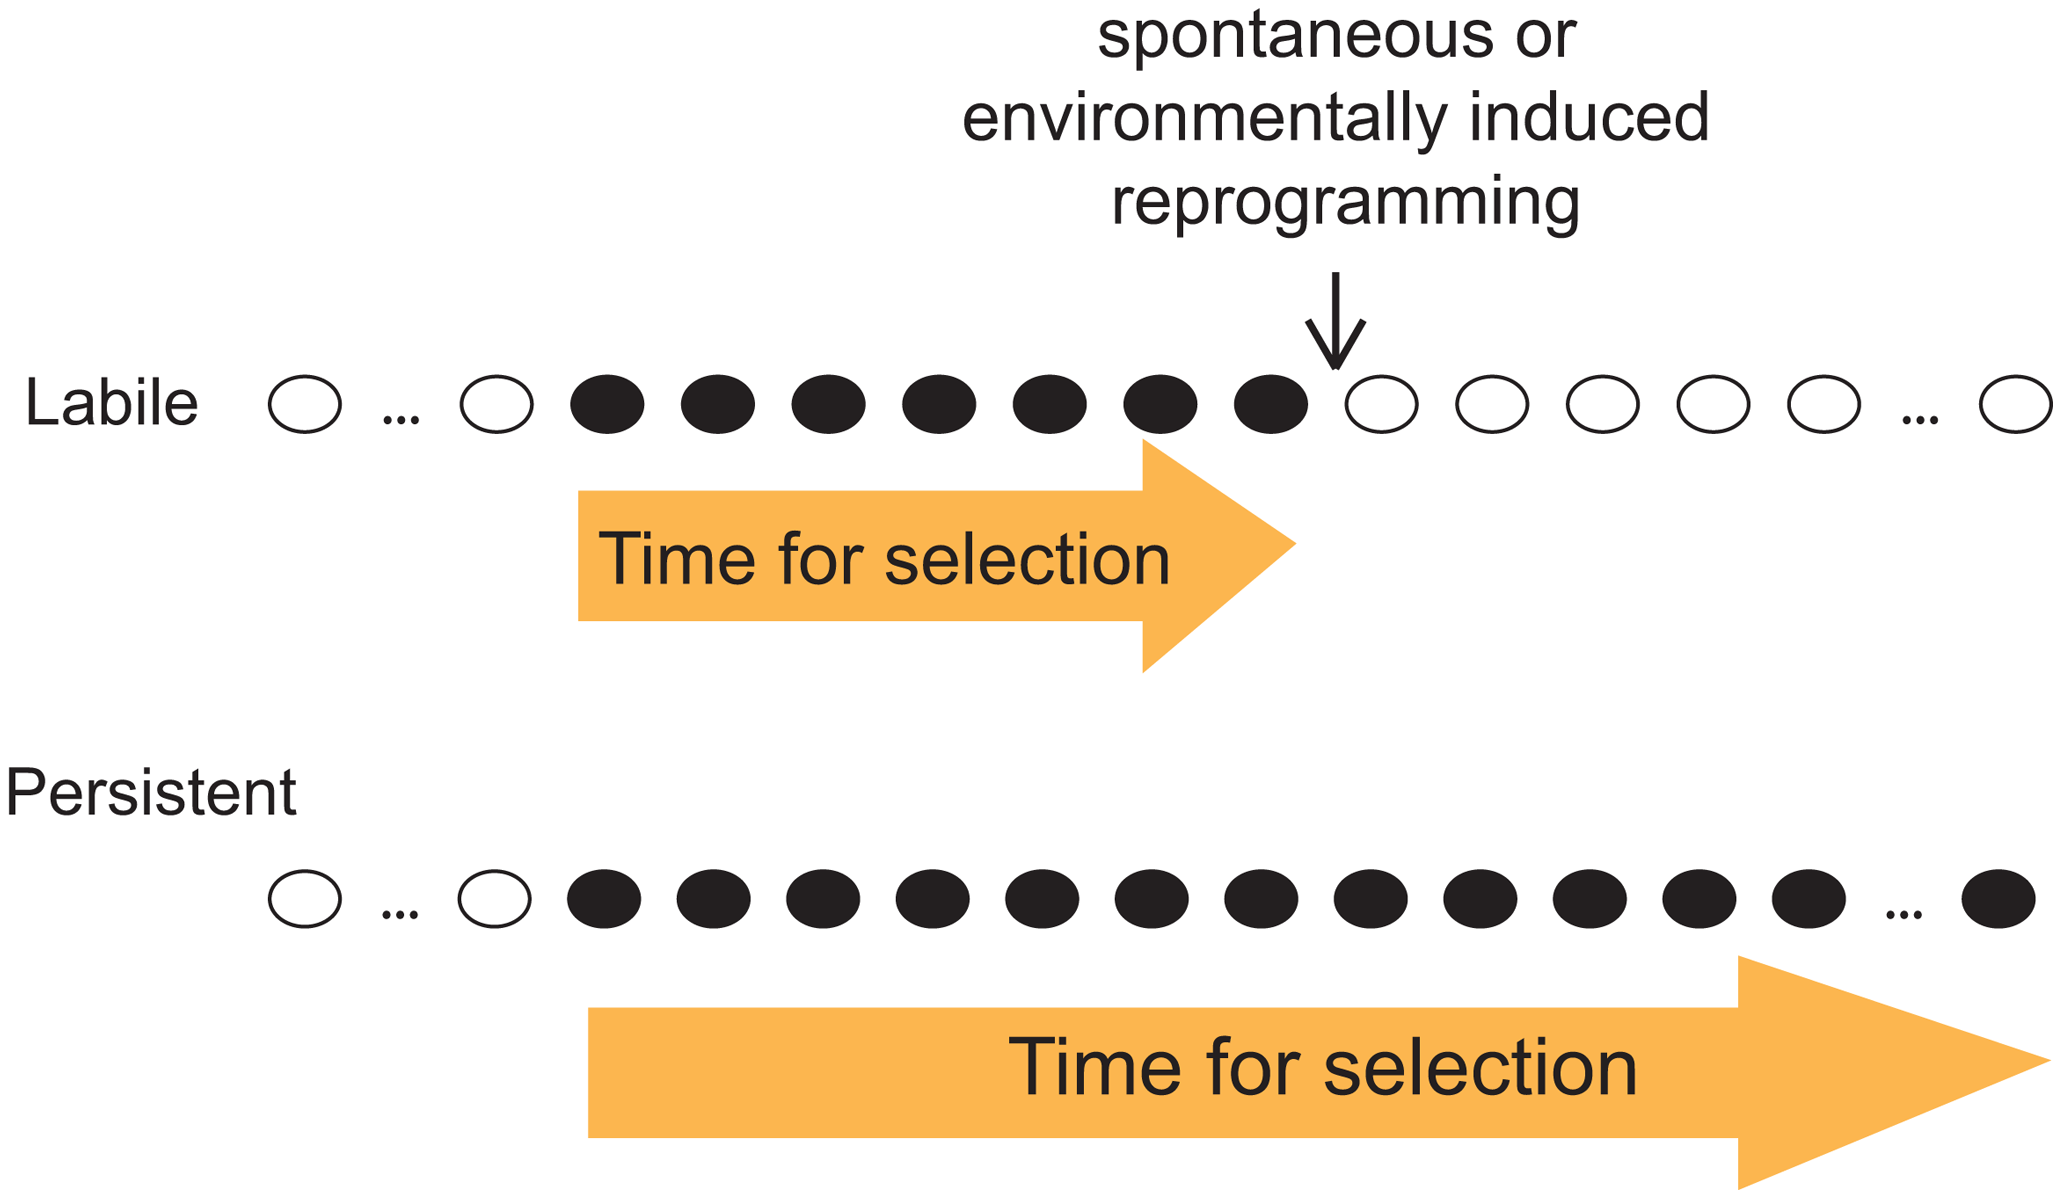 Distinct evolutionary implication of labile and persistent epi-polymorphisms.